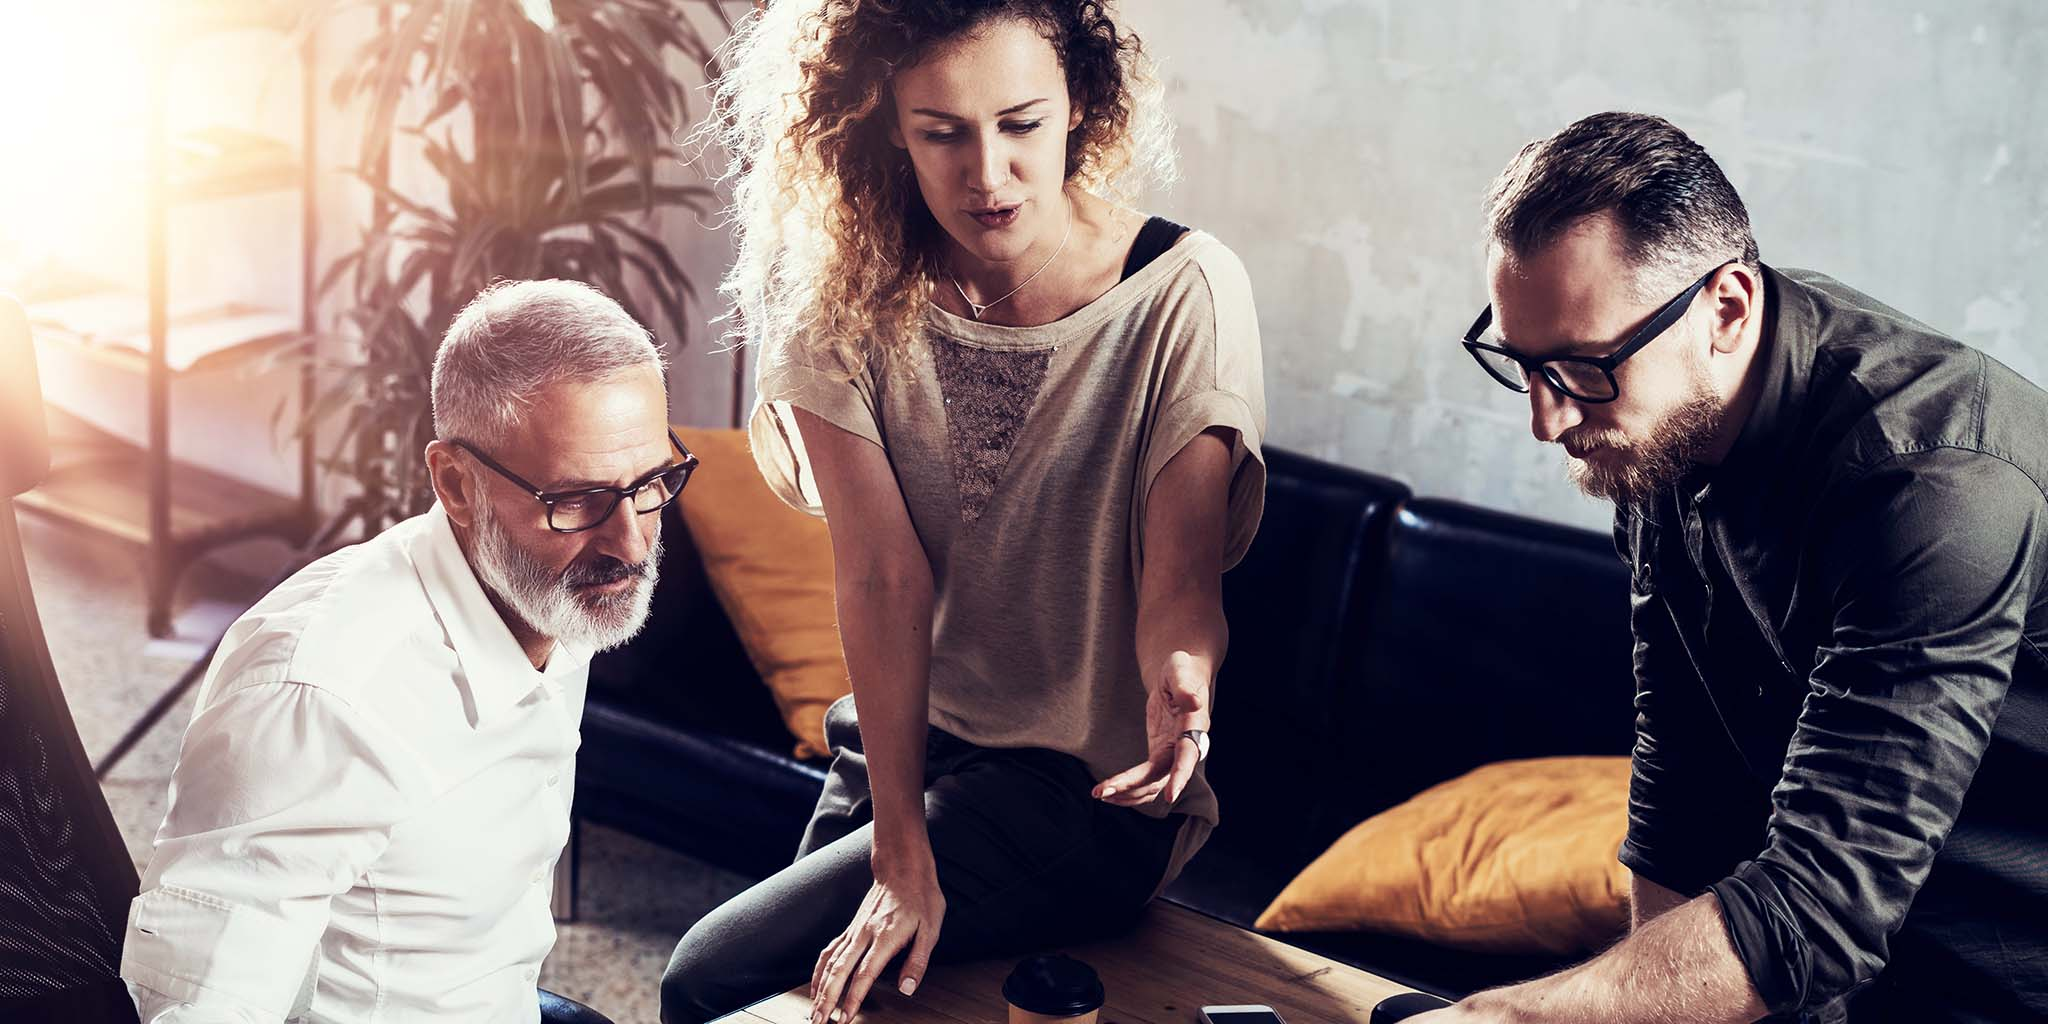 Young team of successful businessman found a great creative solution in modern coworking studio.Bearded man talking with colleagues about startup project.Business people brainstorm concept.